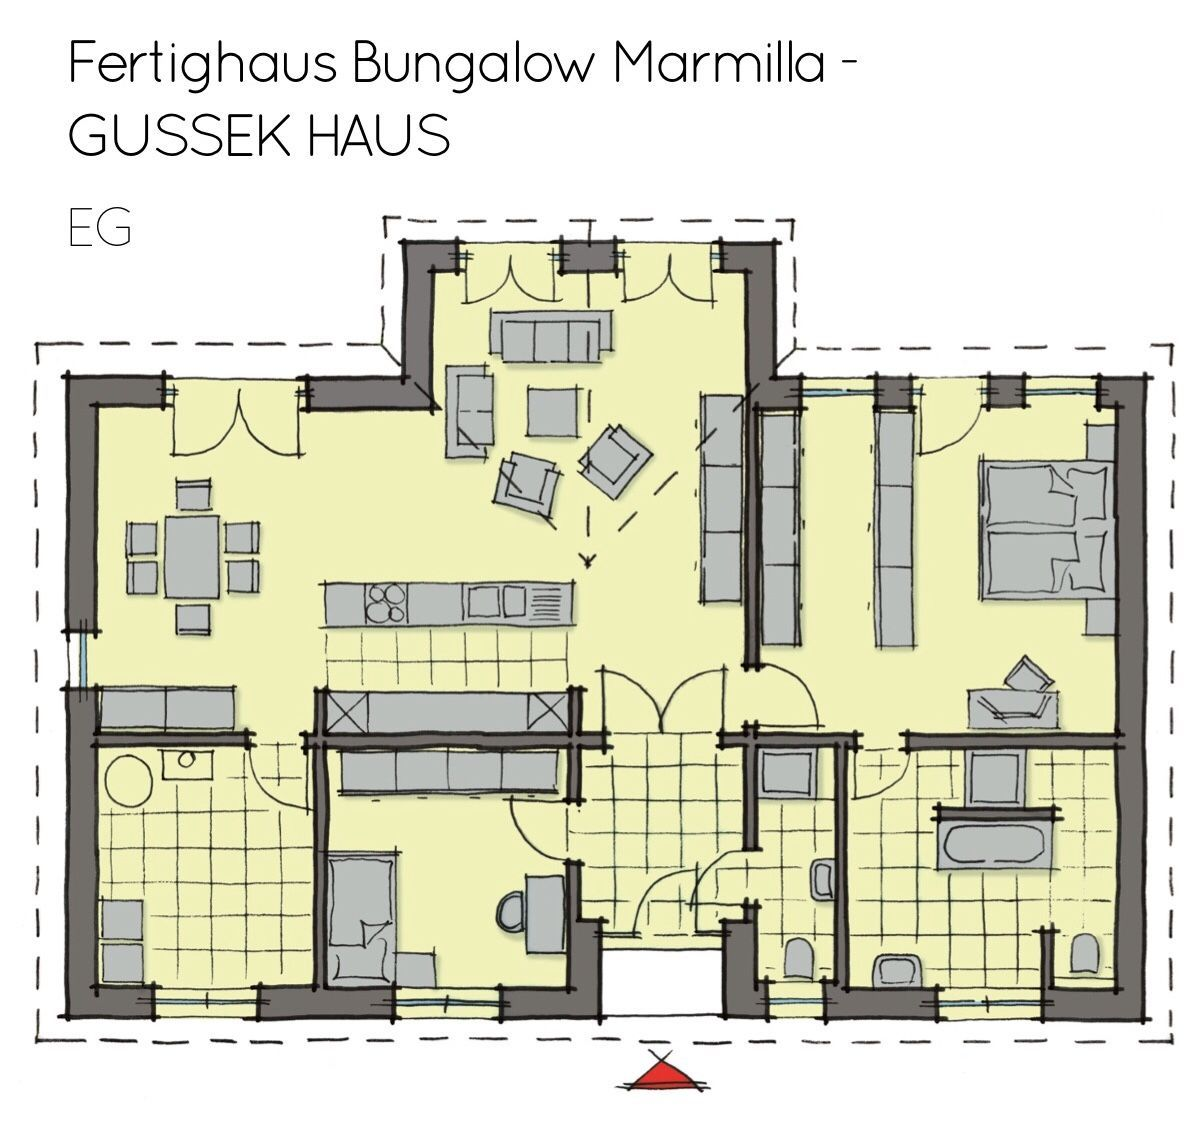 Bungalow Kosten Kosten Bungalow 120 Qm - Best Idea Design 2020